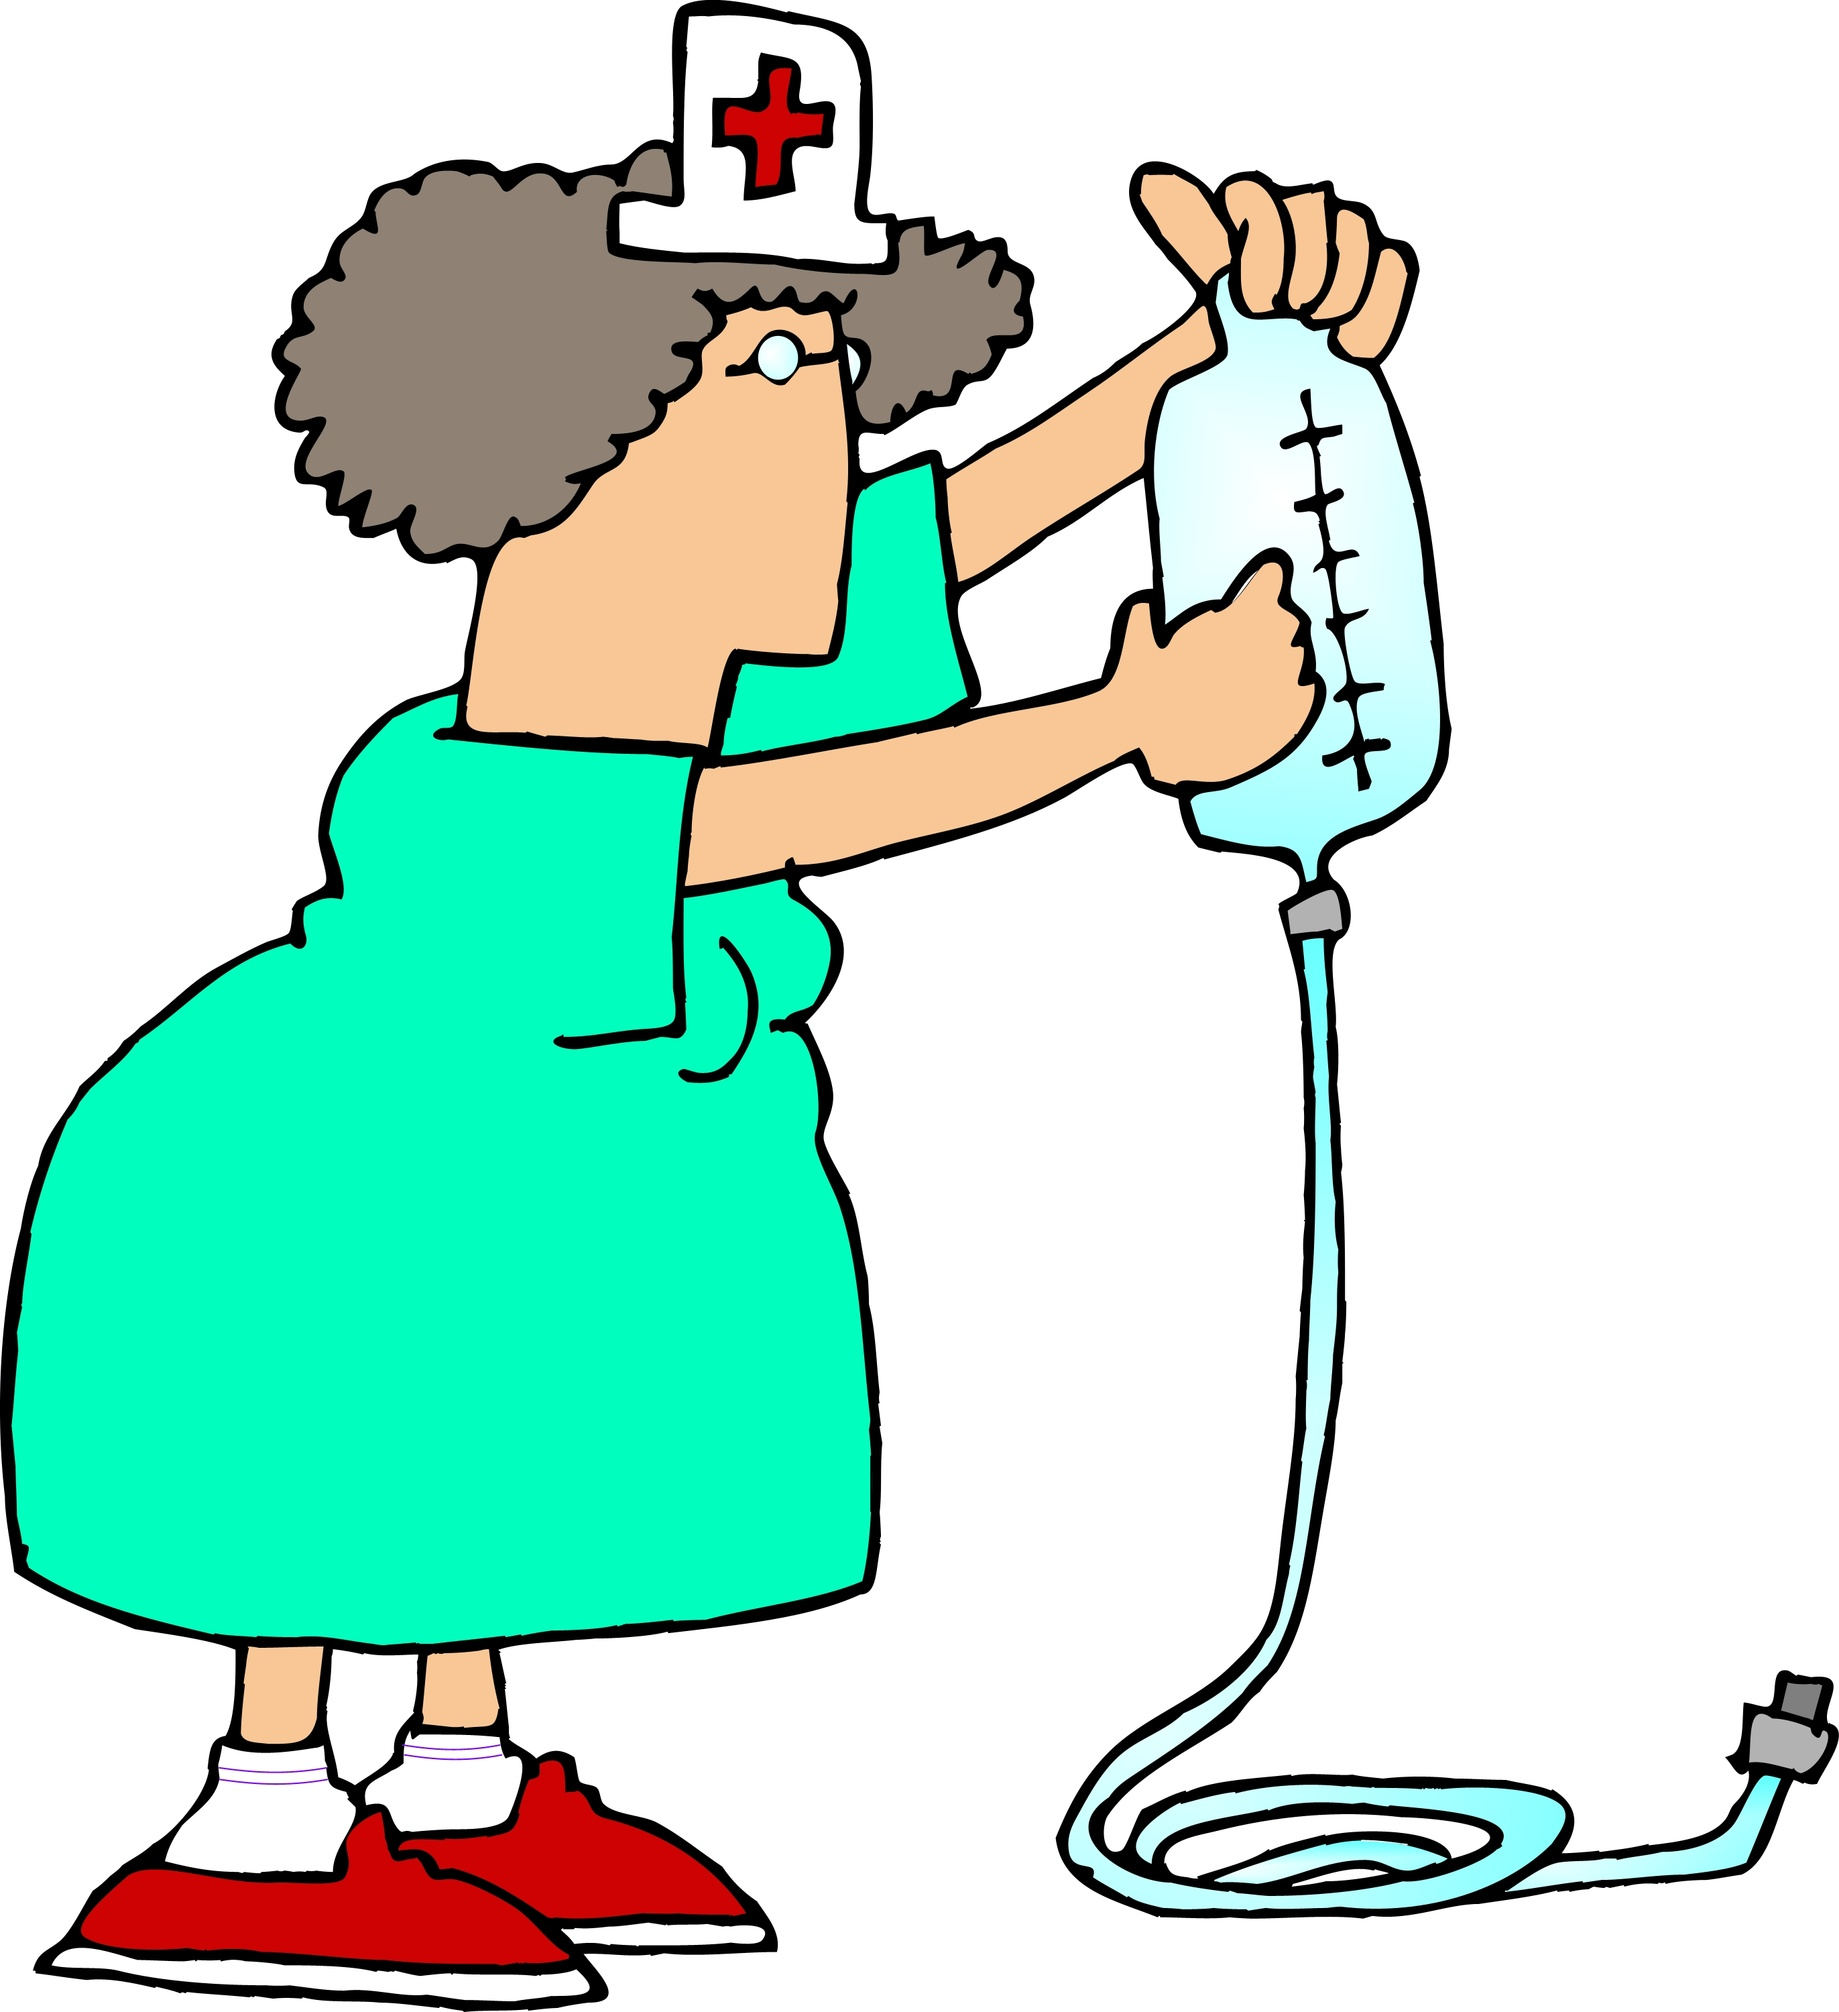 Free Nurse Cartoon Images, Download Free Clip Art, Free Clip.